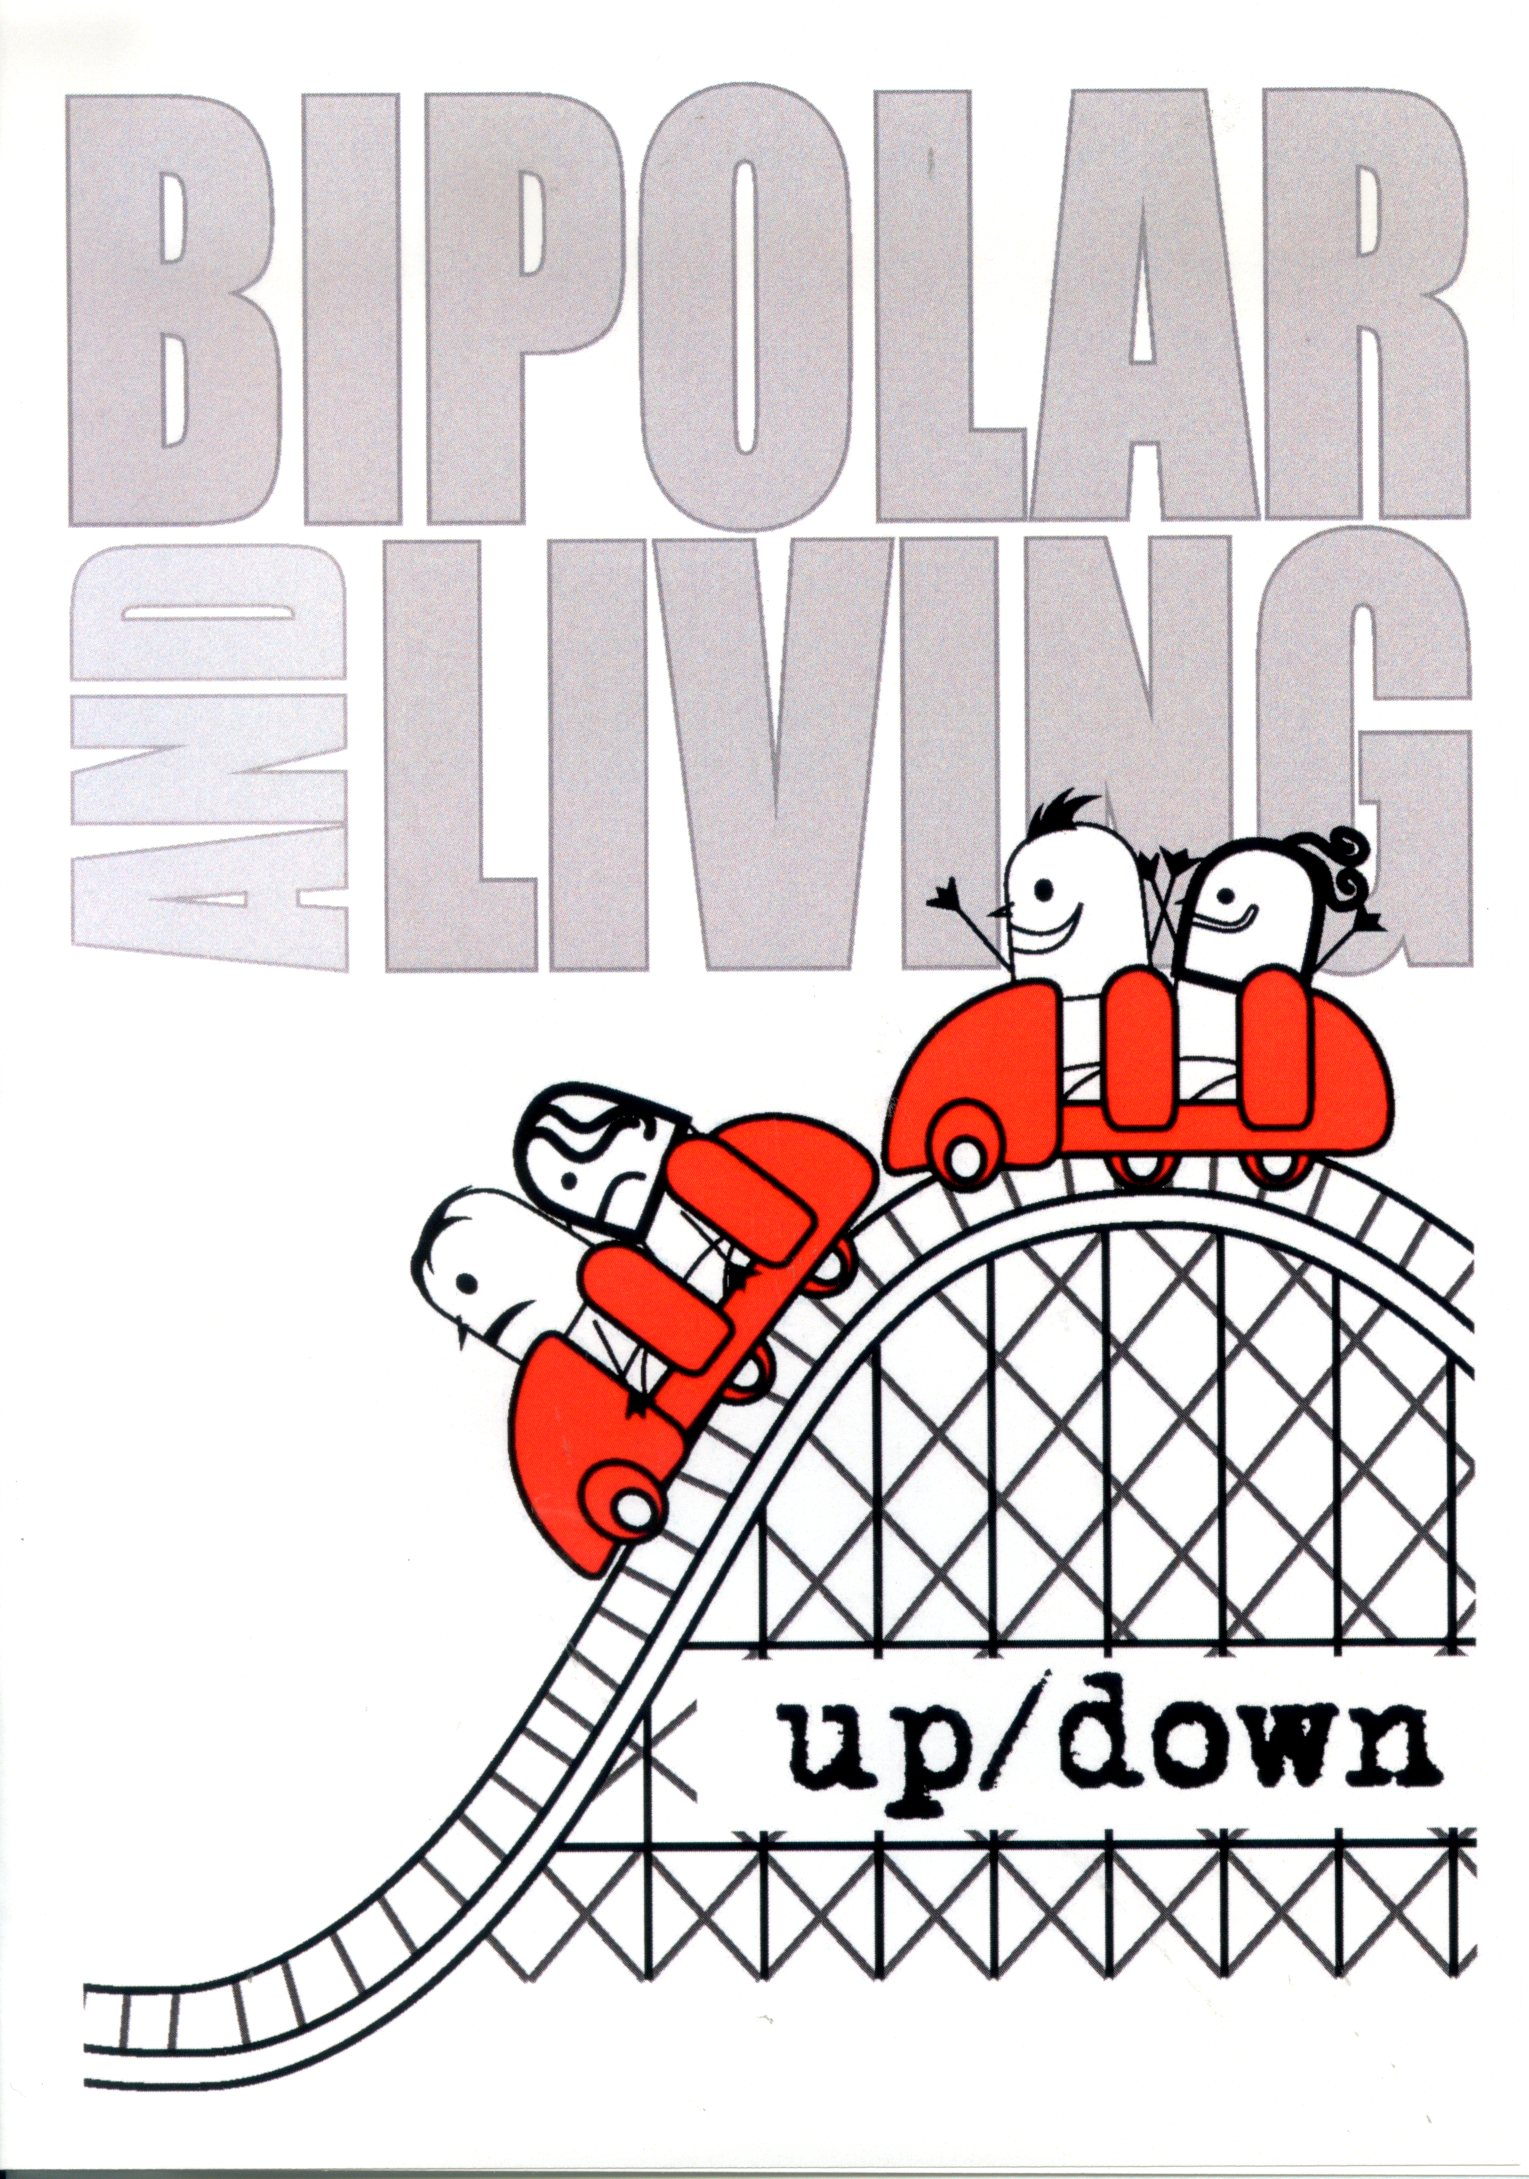 Up/down